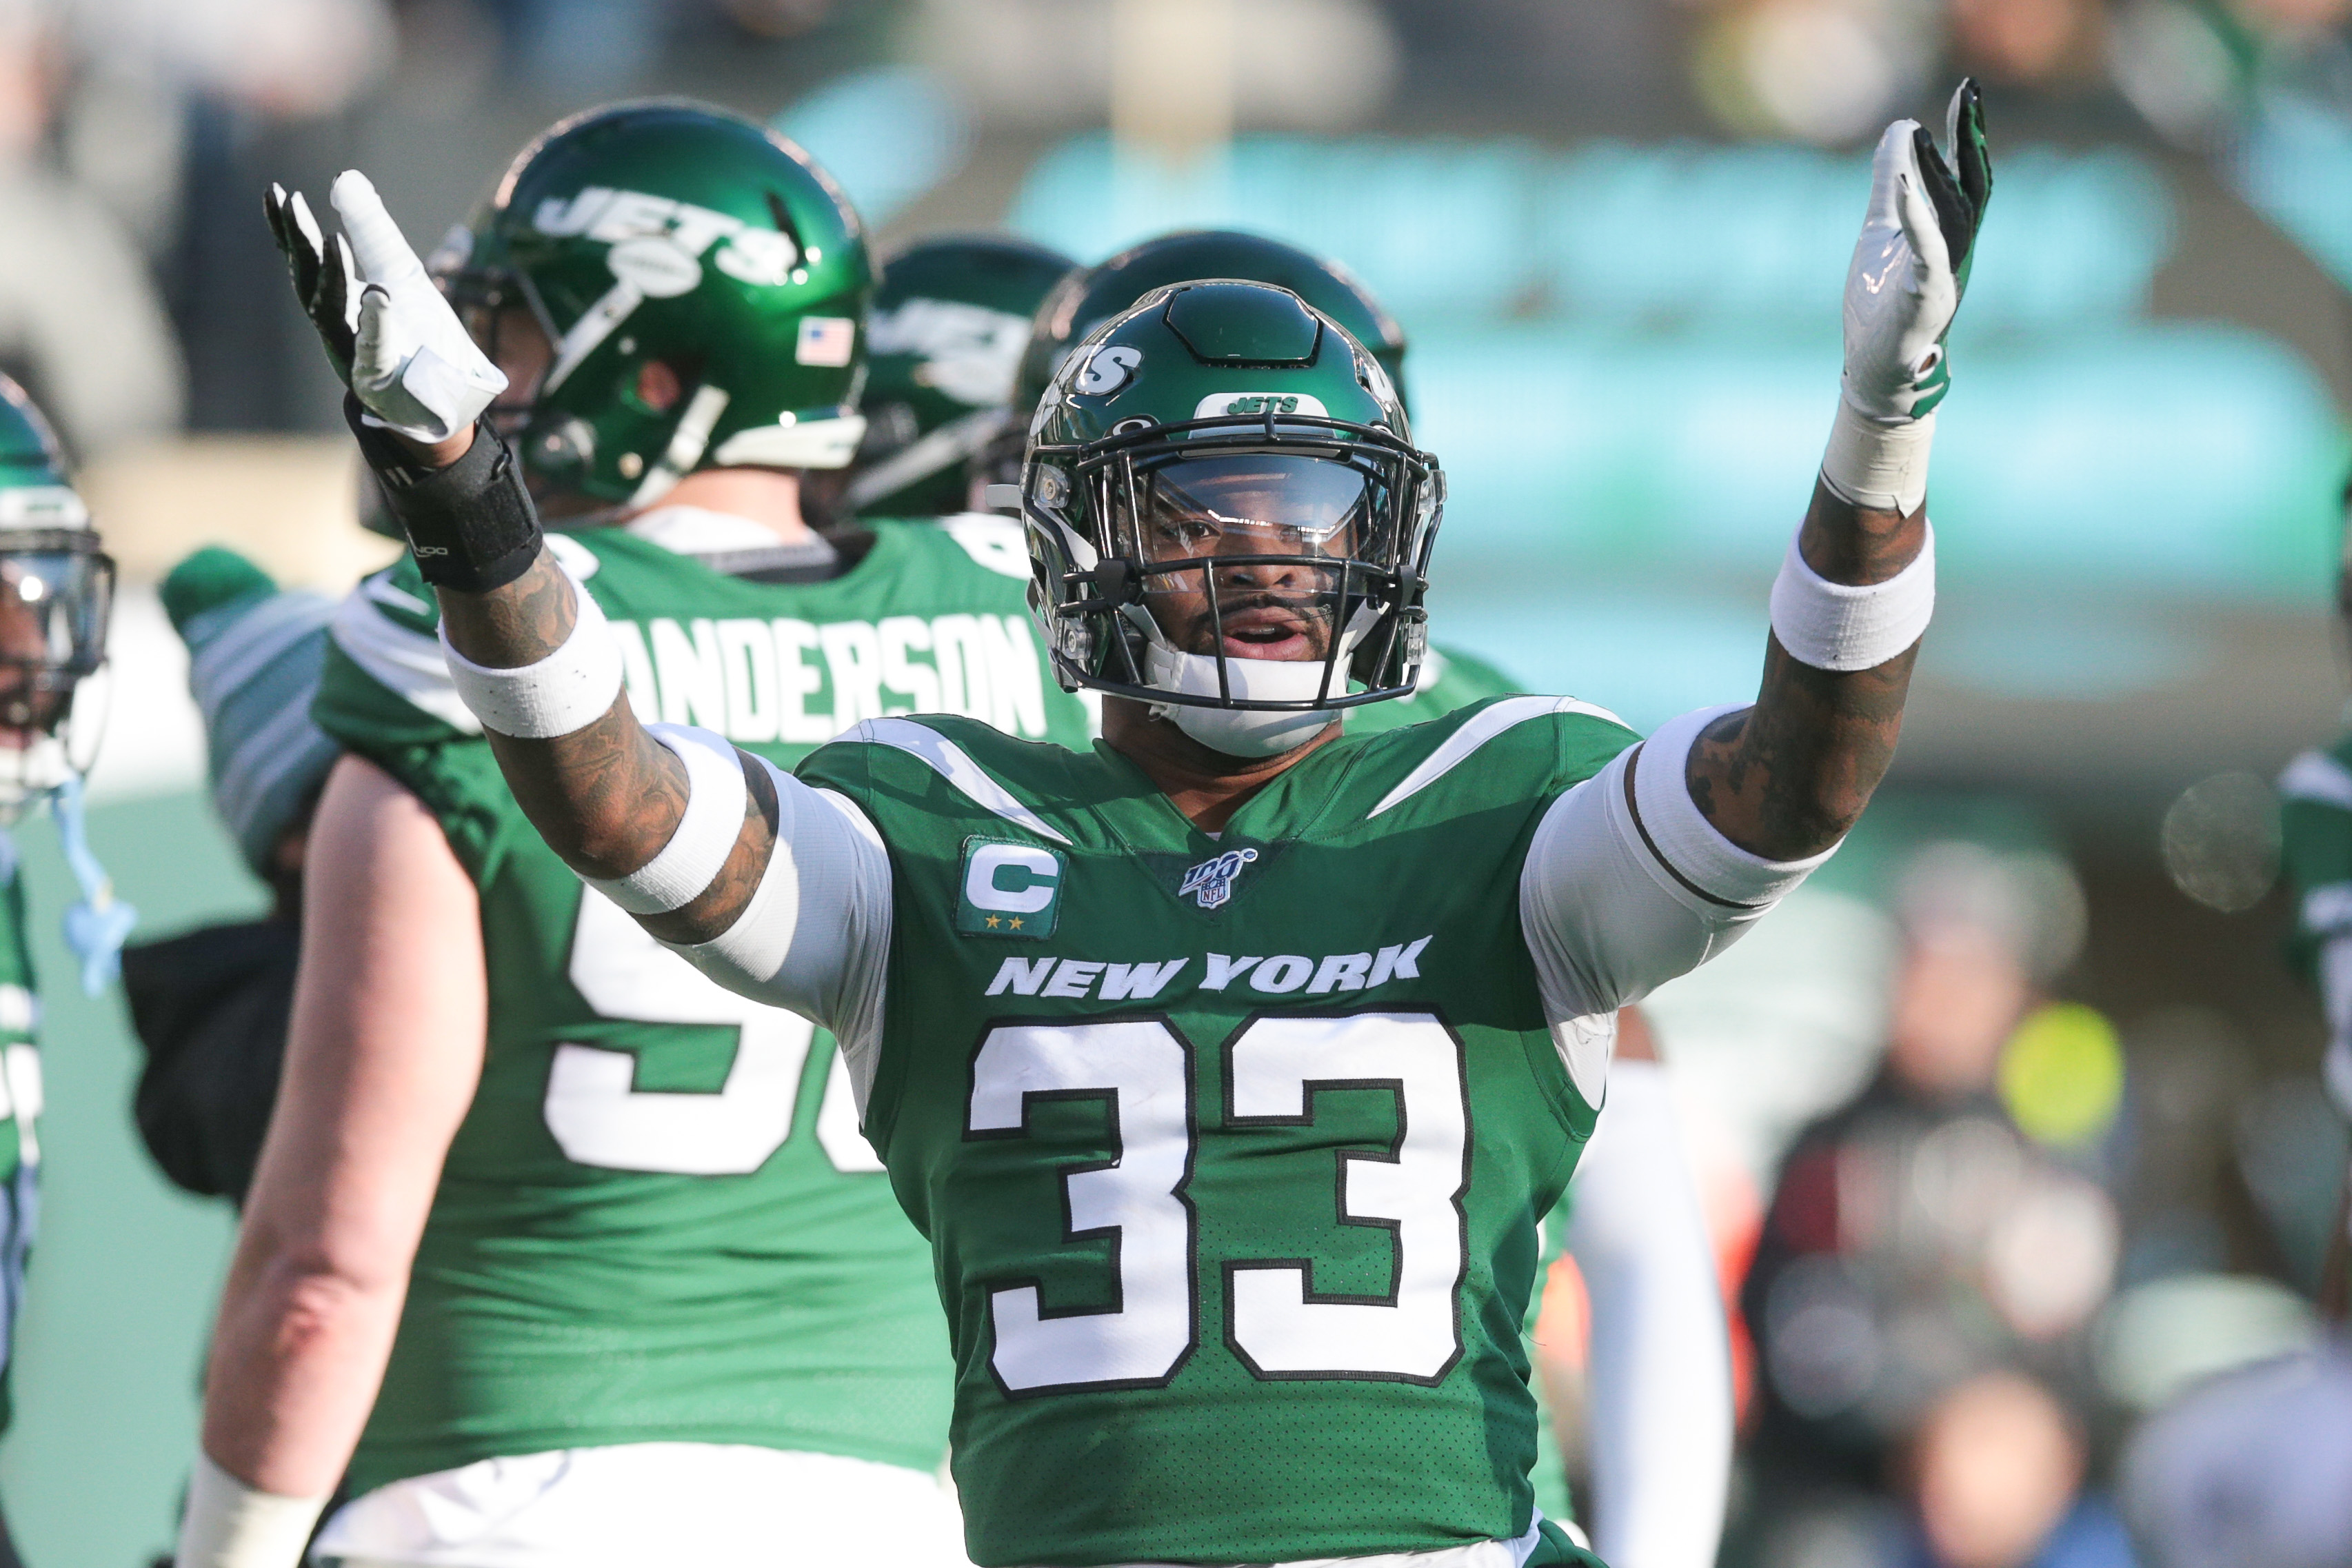 Jets Safety Jamal Adams With Another Postseason Honor